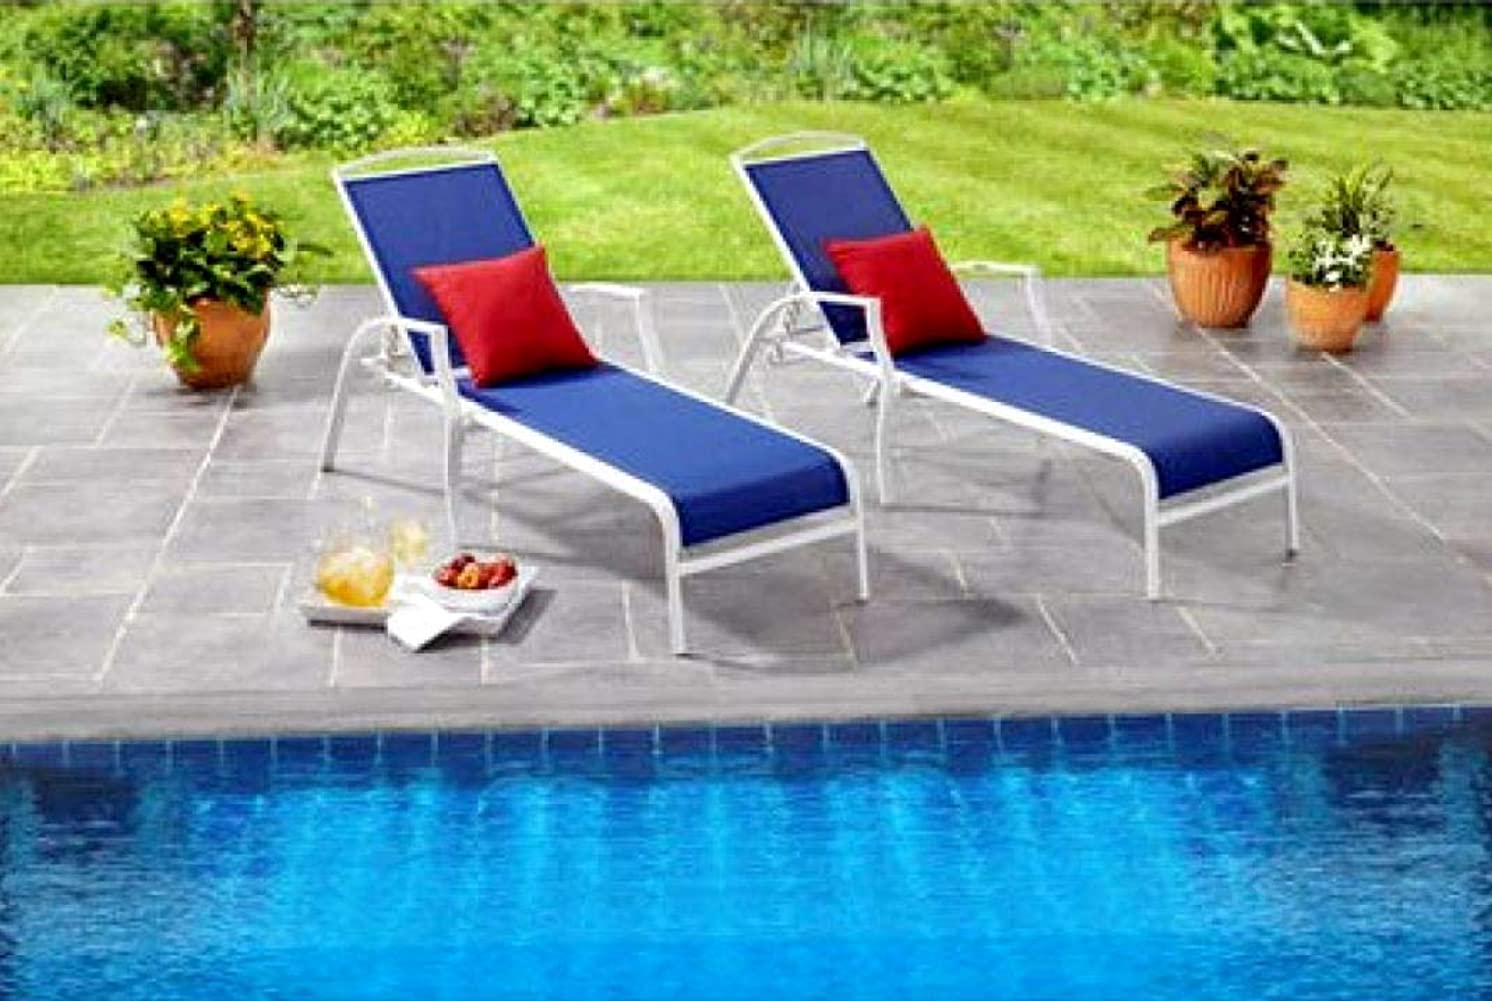 Sunbathing Lounge Chair Poolside Outdoor Lawn Loungers for Adults Deck Patio Chaise Reclining Seats Furniture Set of 2